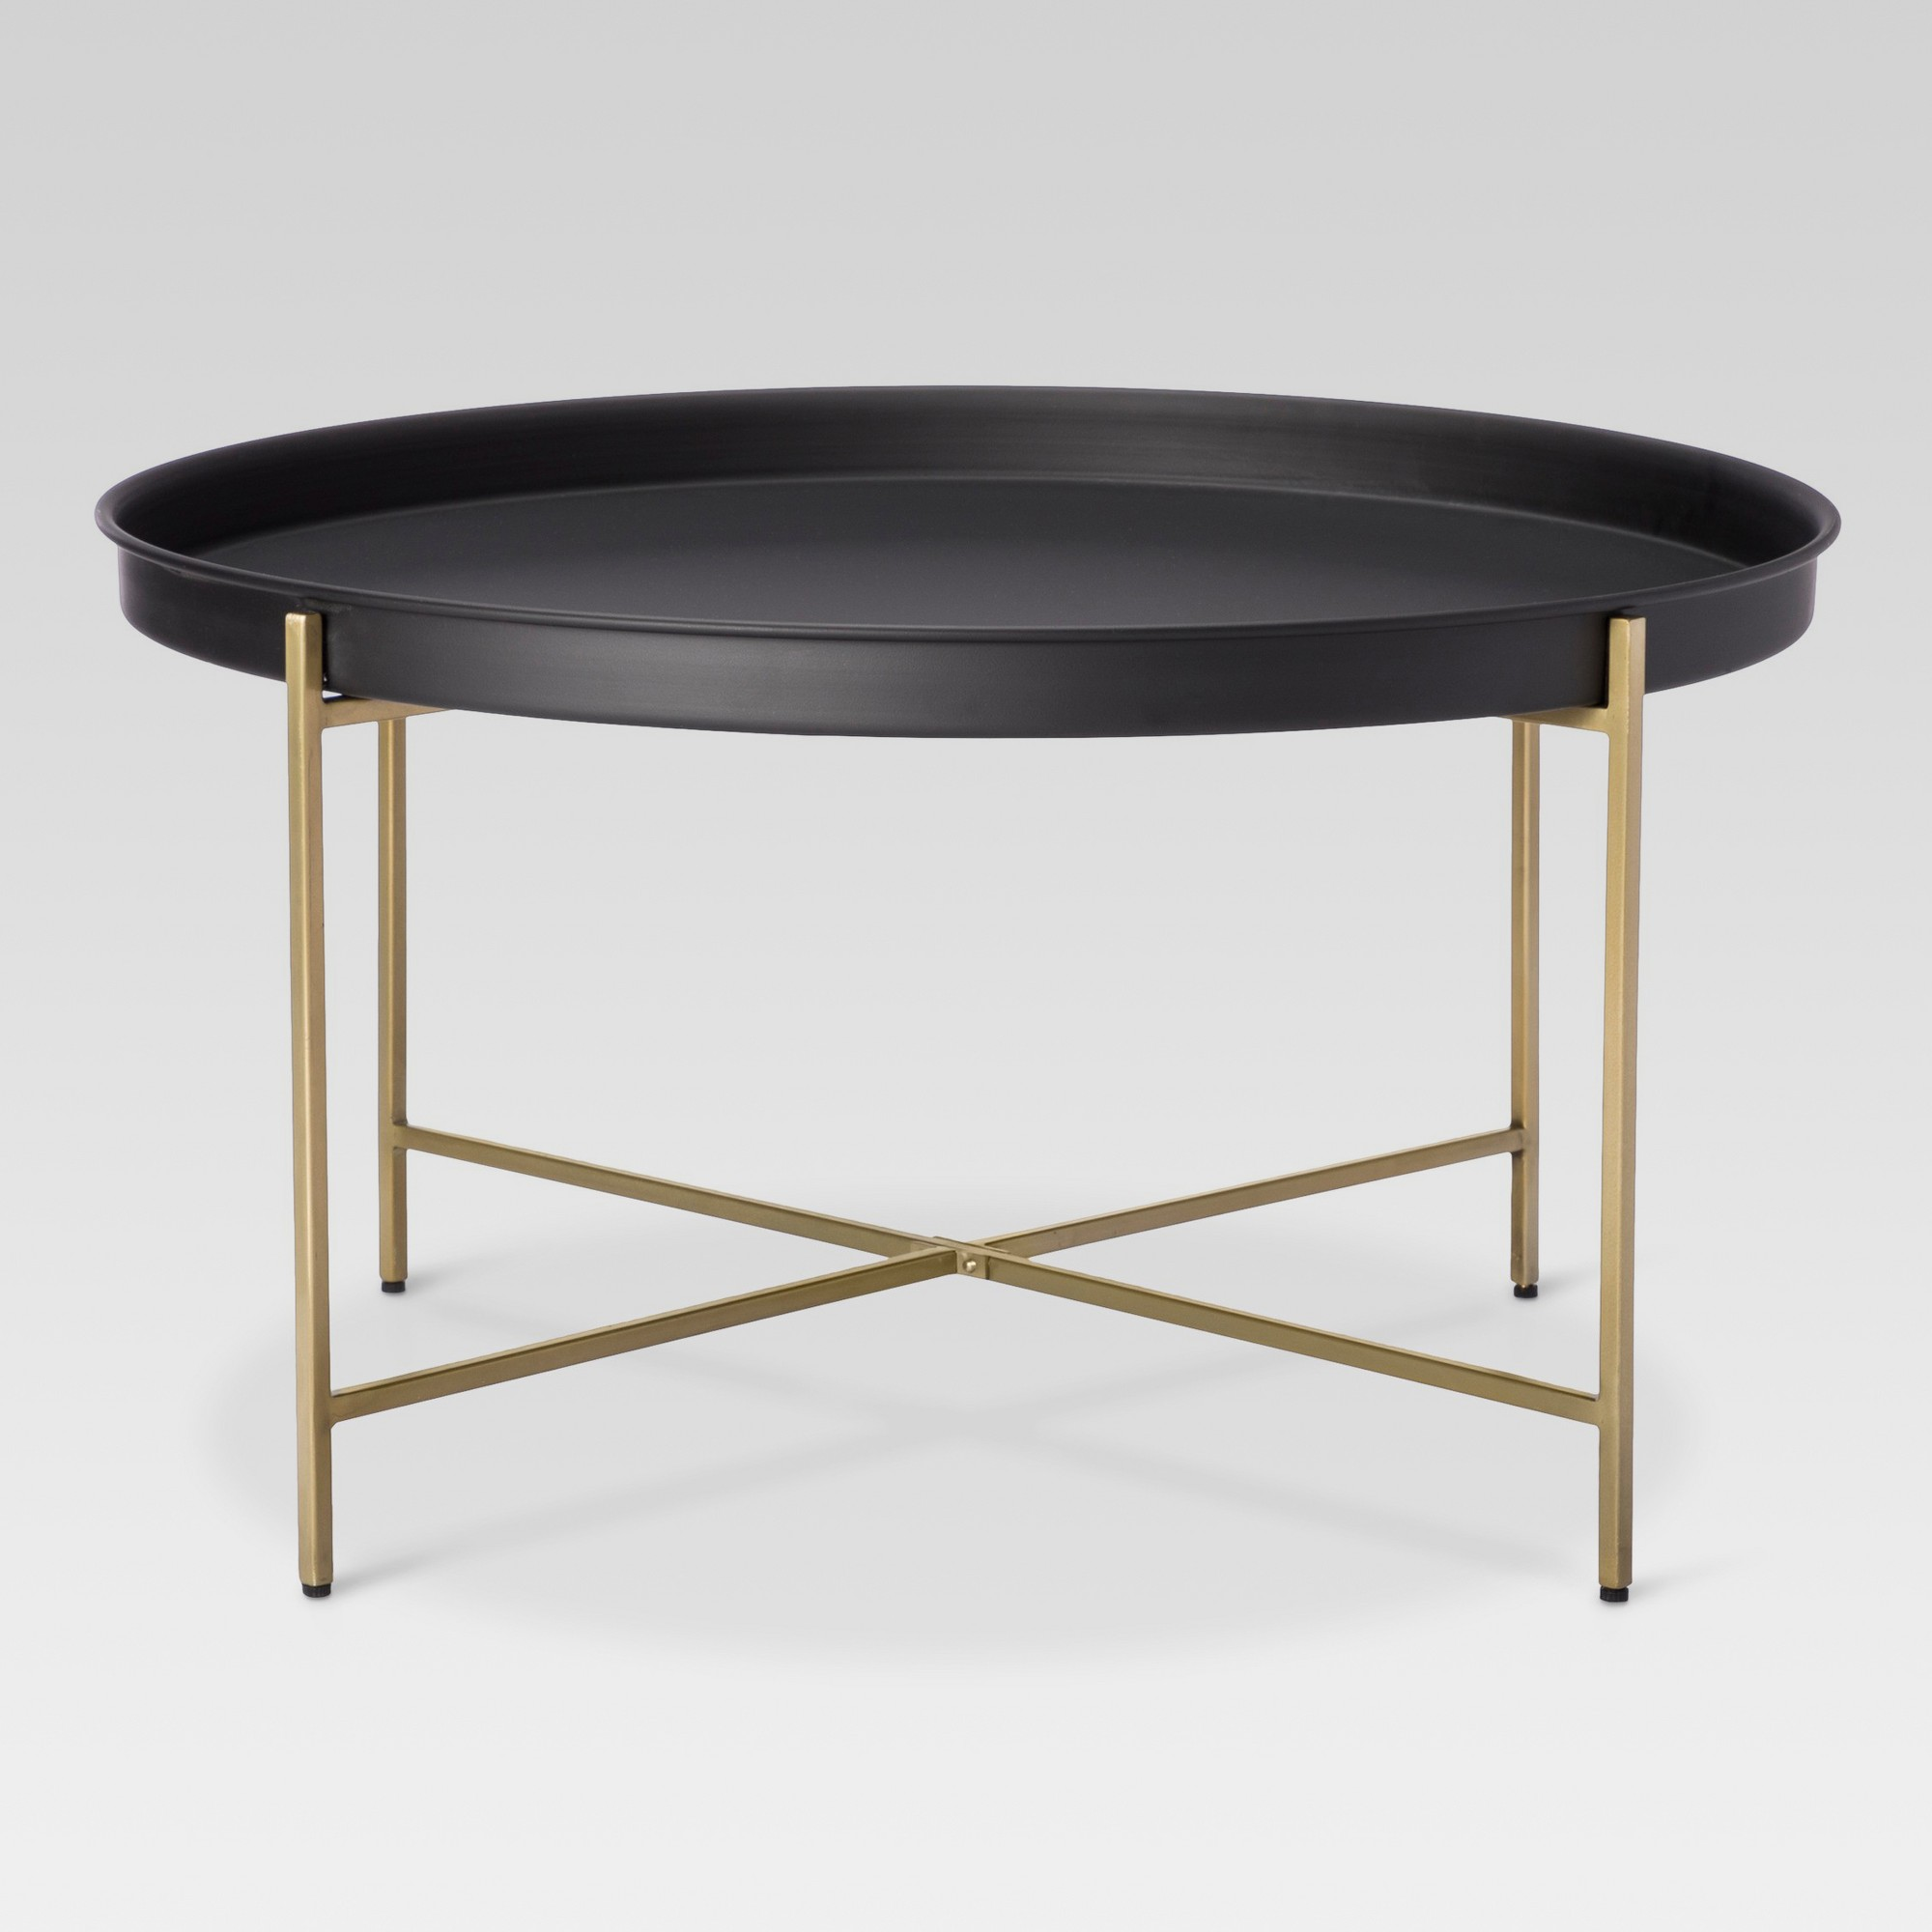 brass tray coffee table threshold black products living room metal accent ashley furniture upholstered narrow with storage inch high tables accessories for house decoration ikea